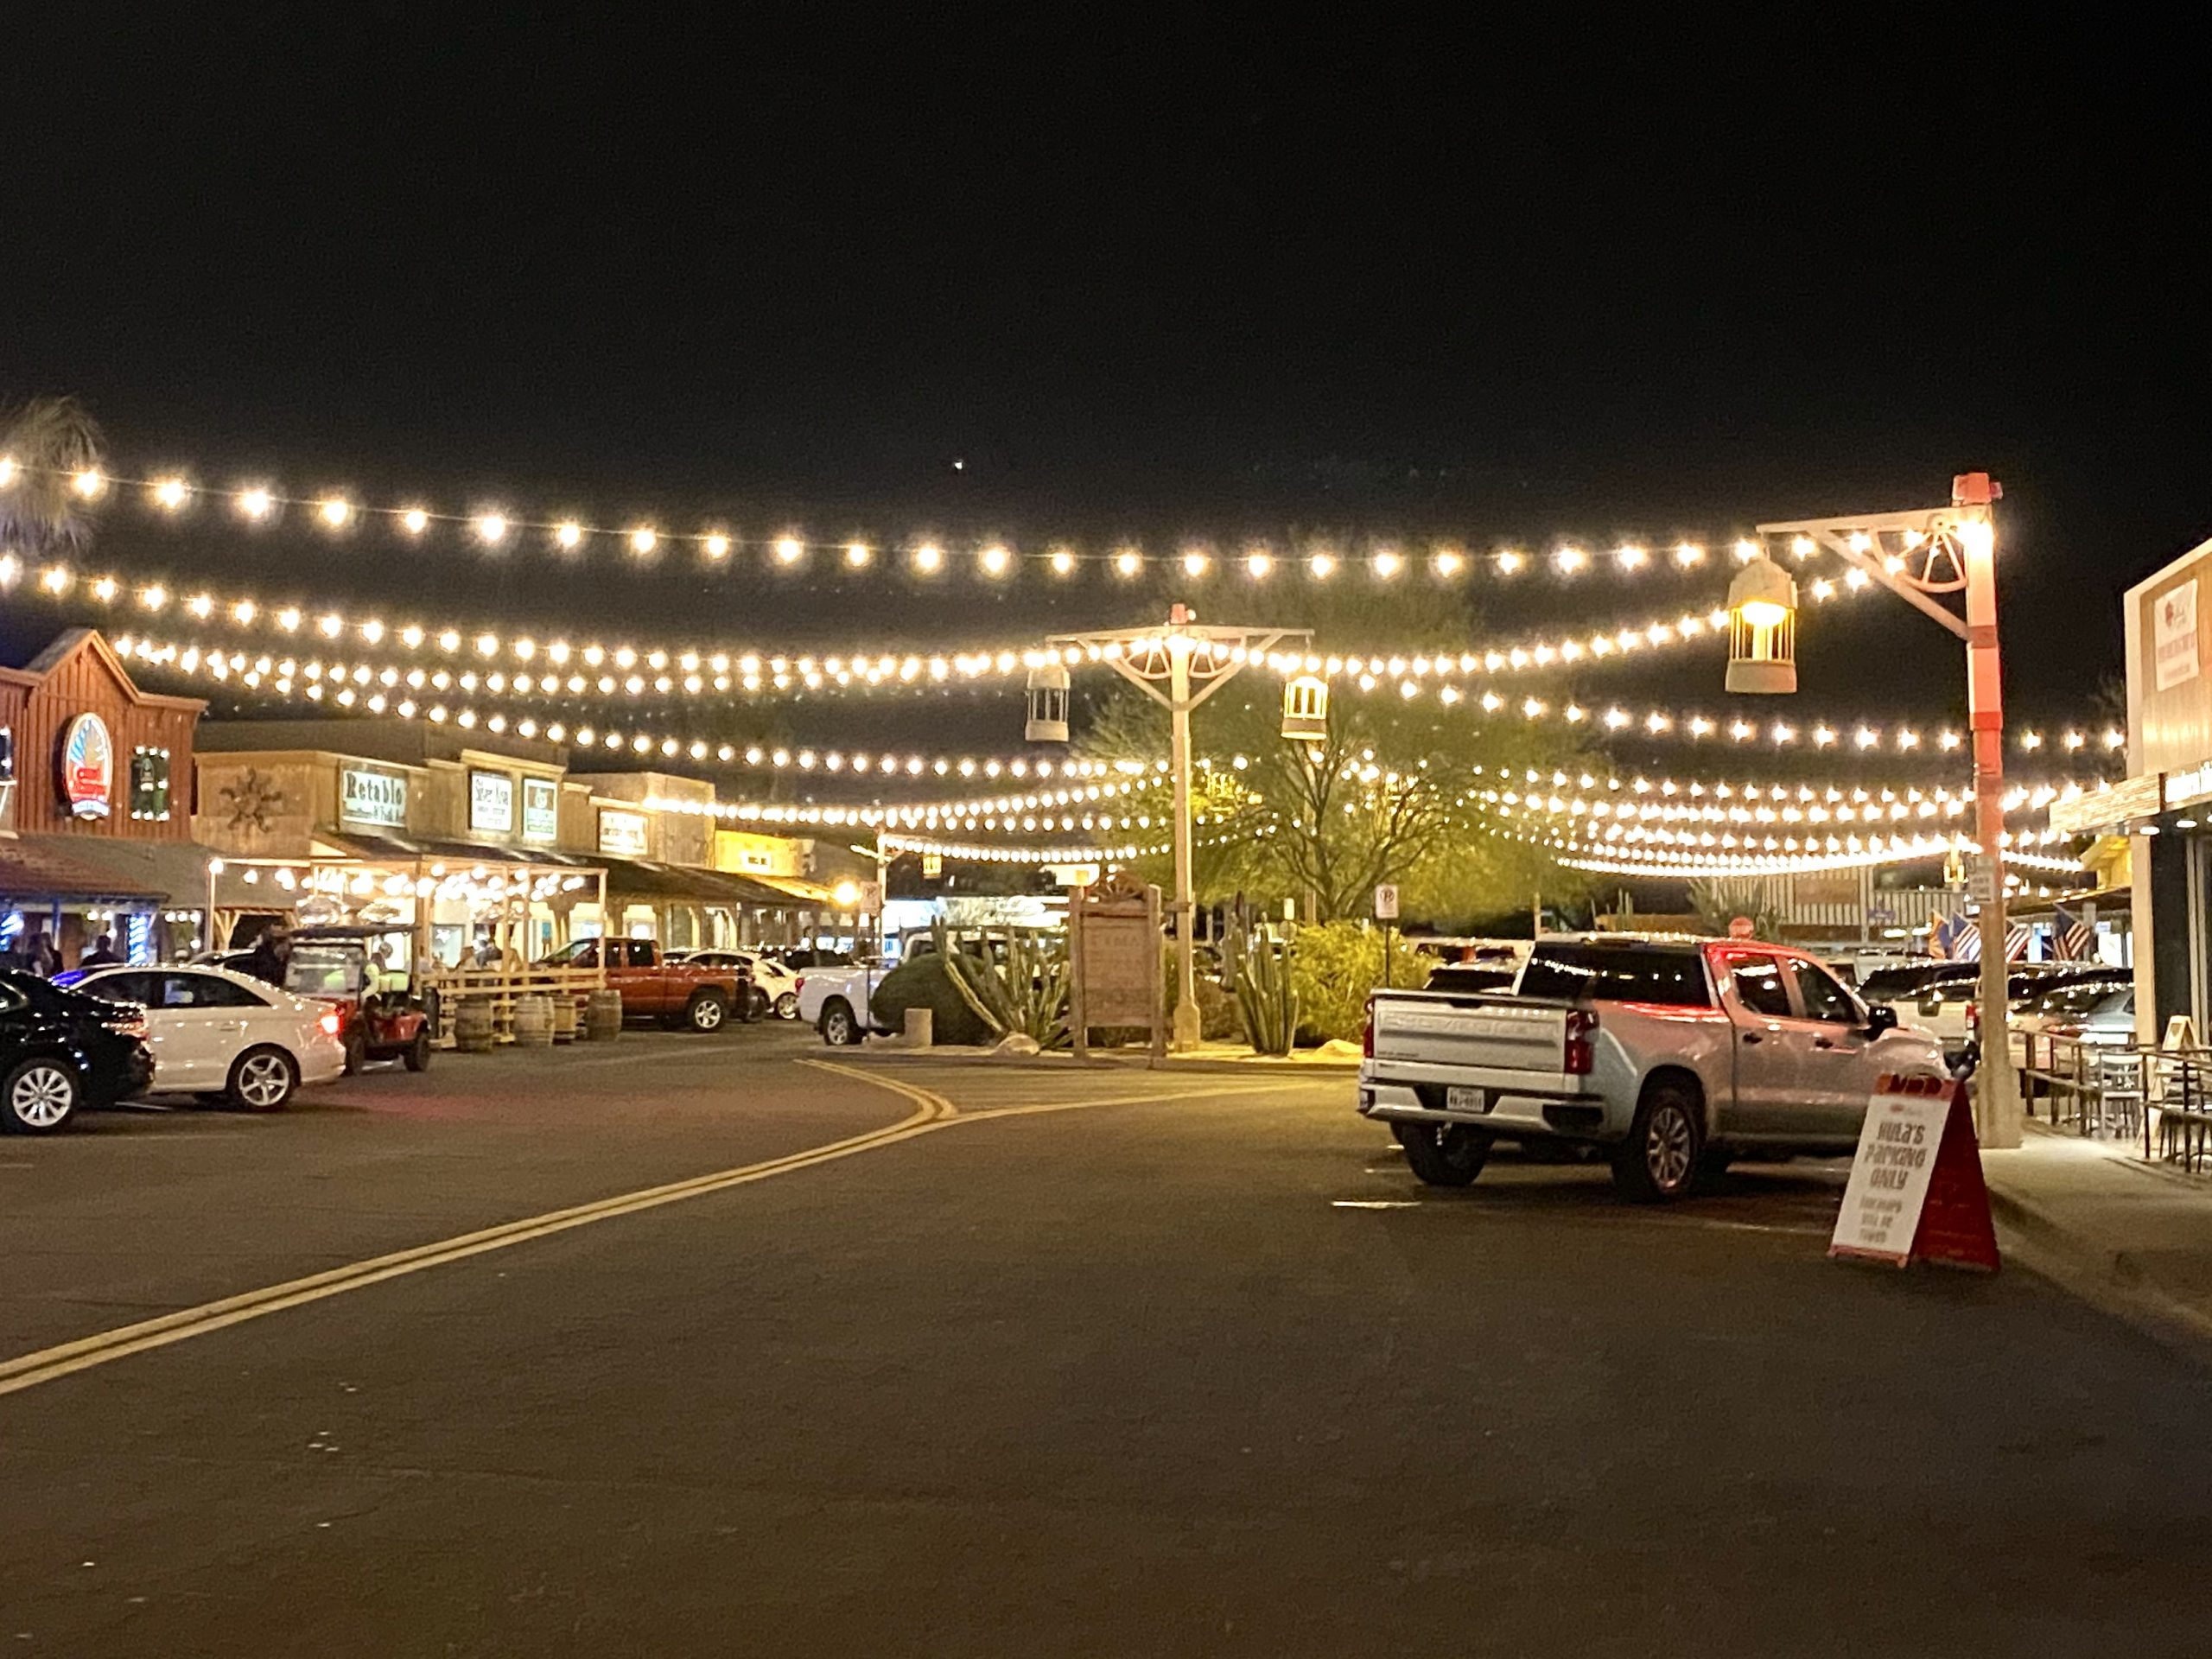 Festive streetlights cross the boulevards in historic downtown Old Town Scottsdale, Arizona